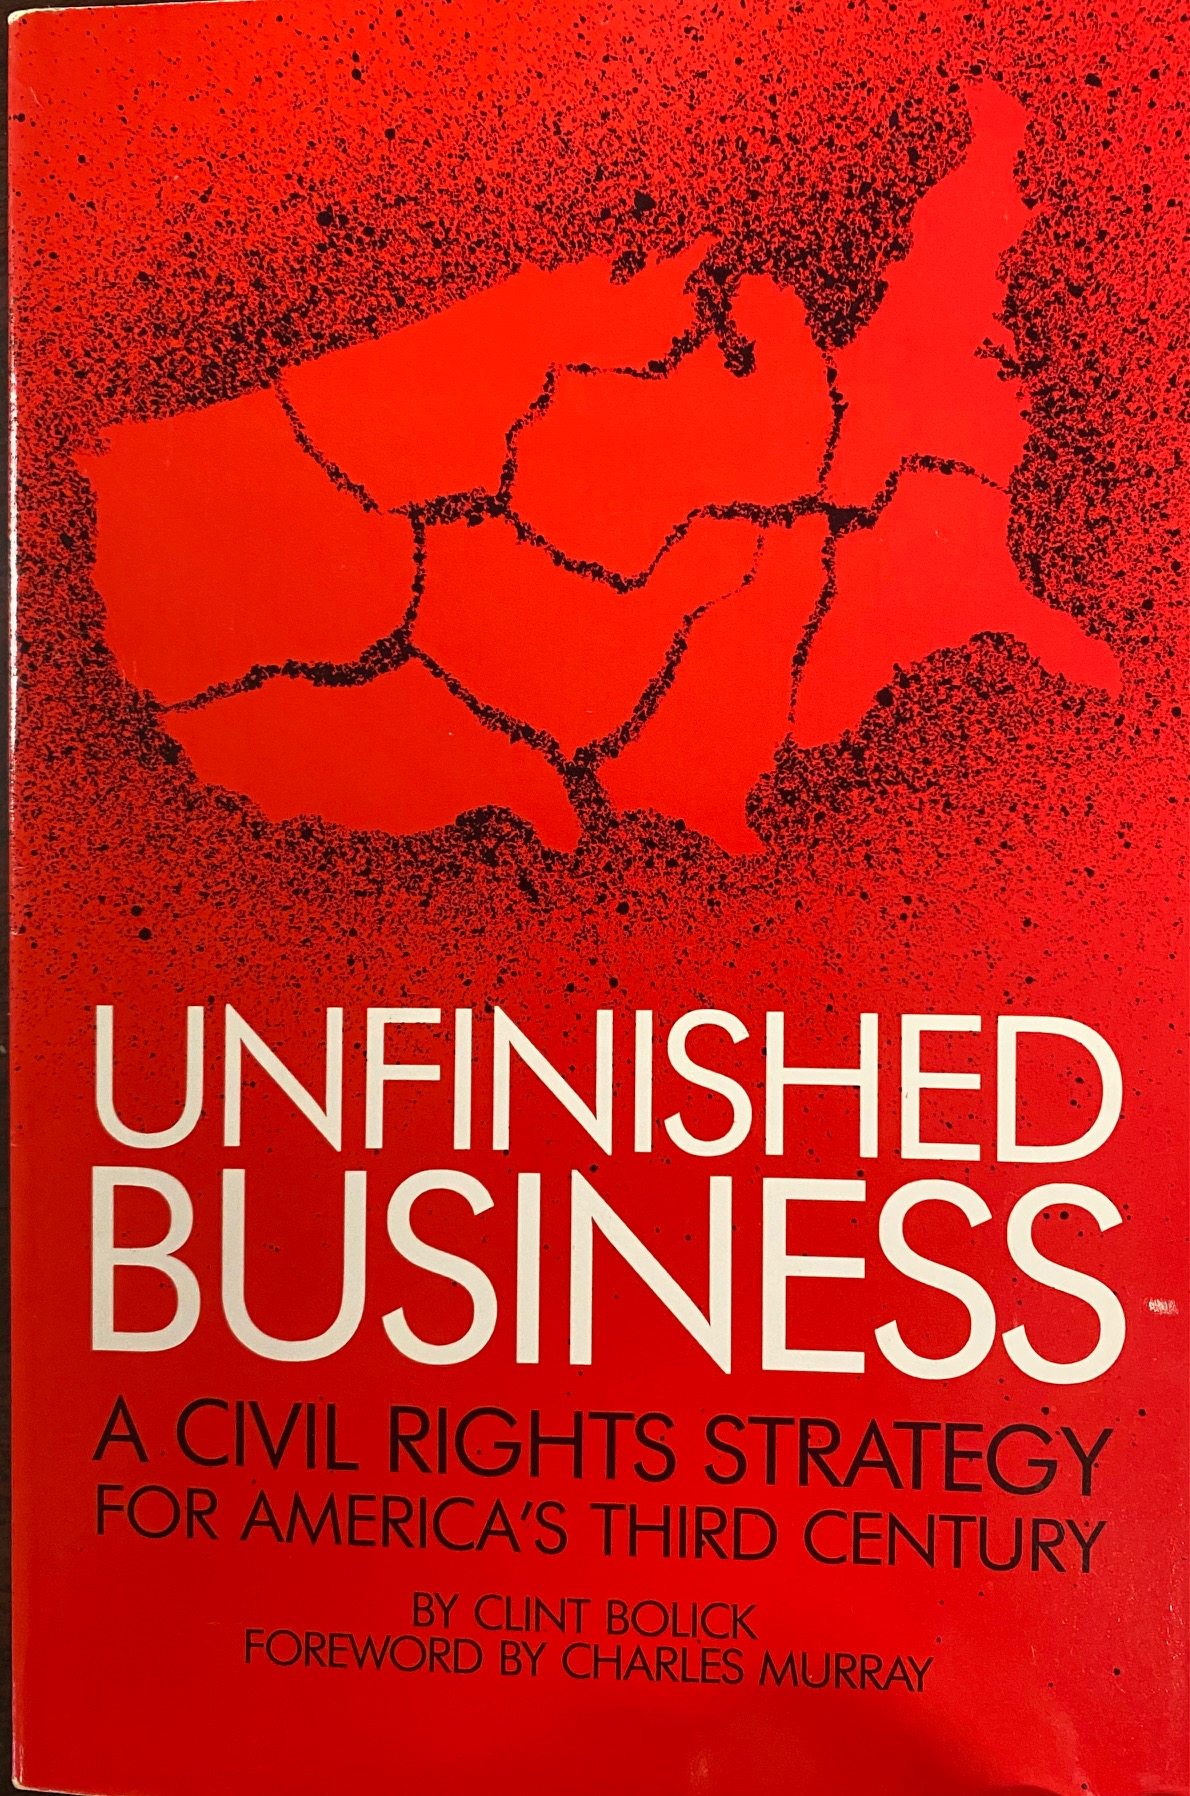 Image for Unfinished Business: A Civil Rights Strategy for America's Third Century